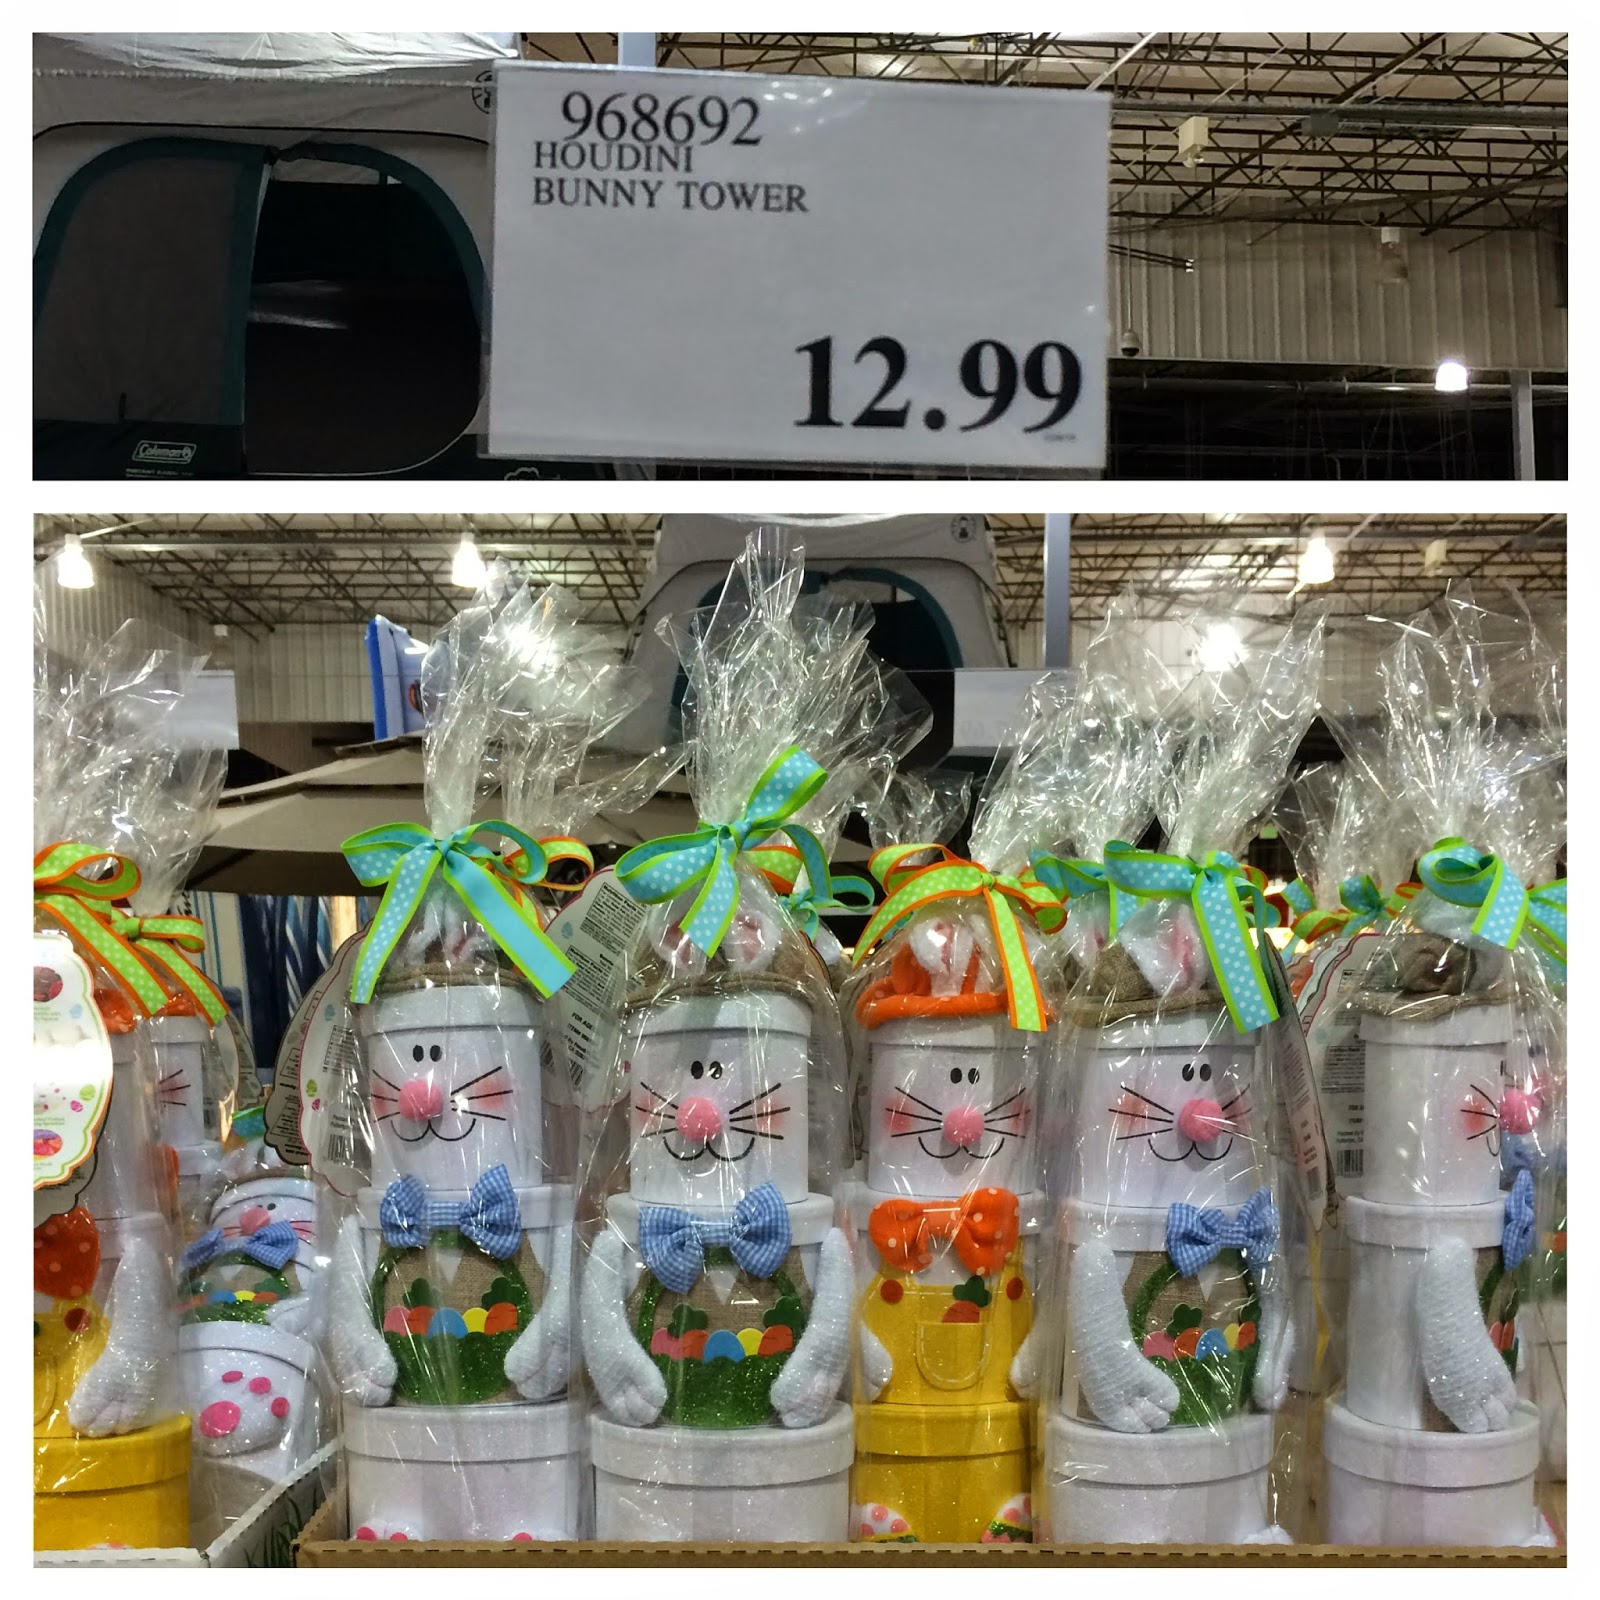 The costco connoisseur celebrate easter with costco celebrate easter with costco negle Images